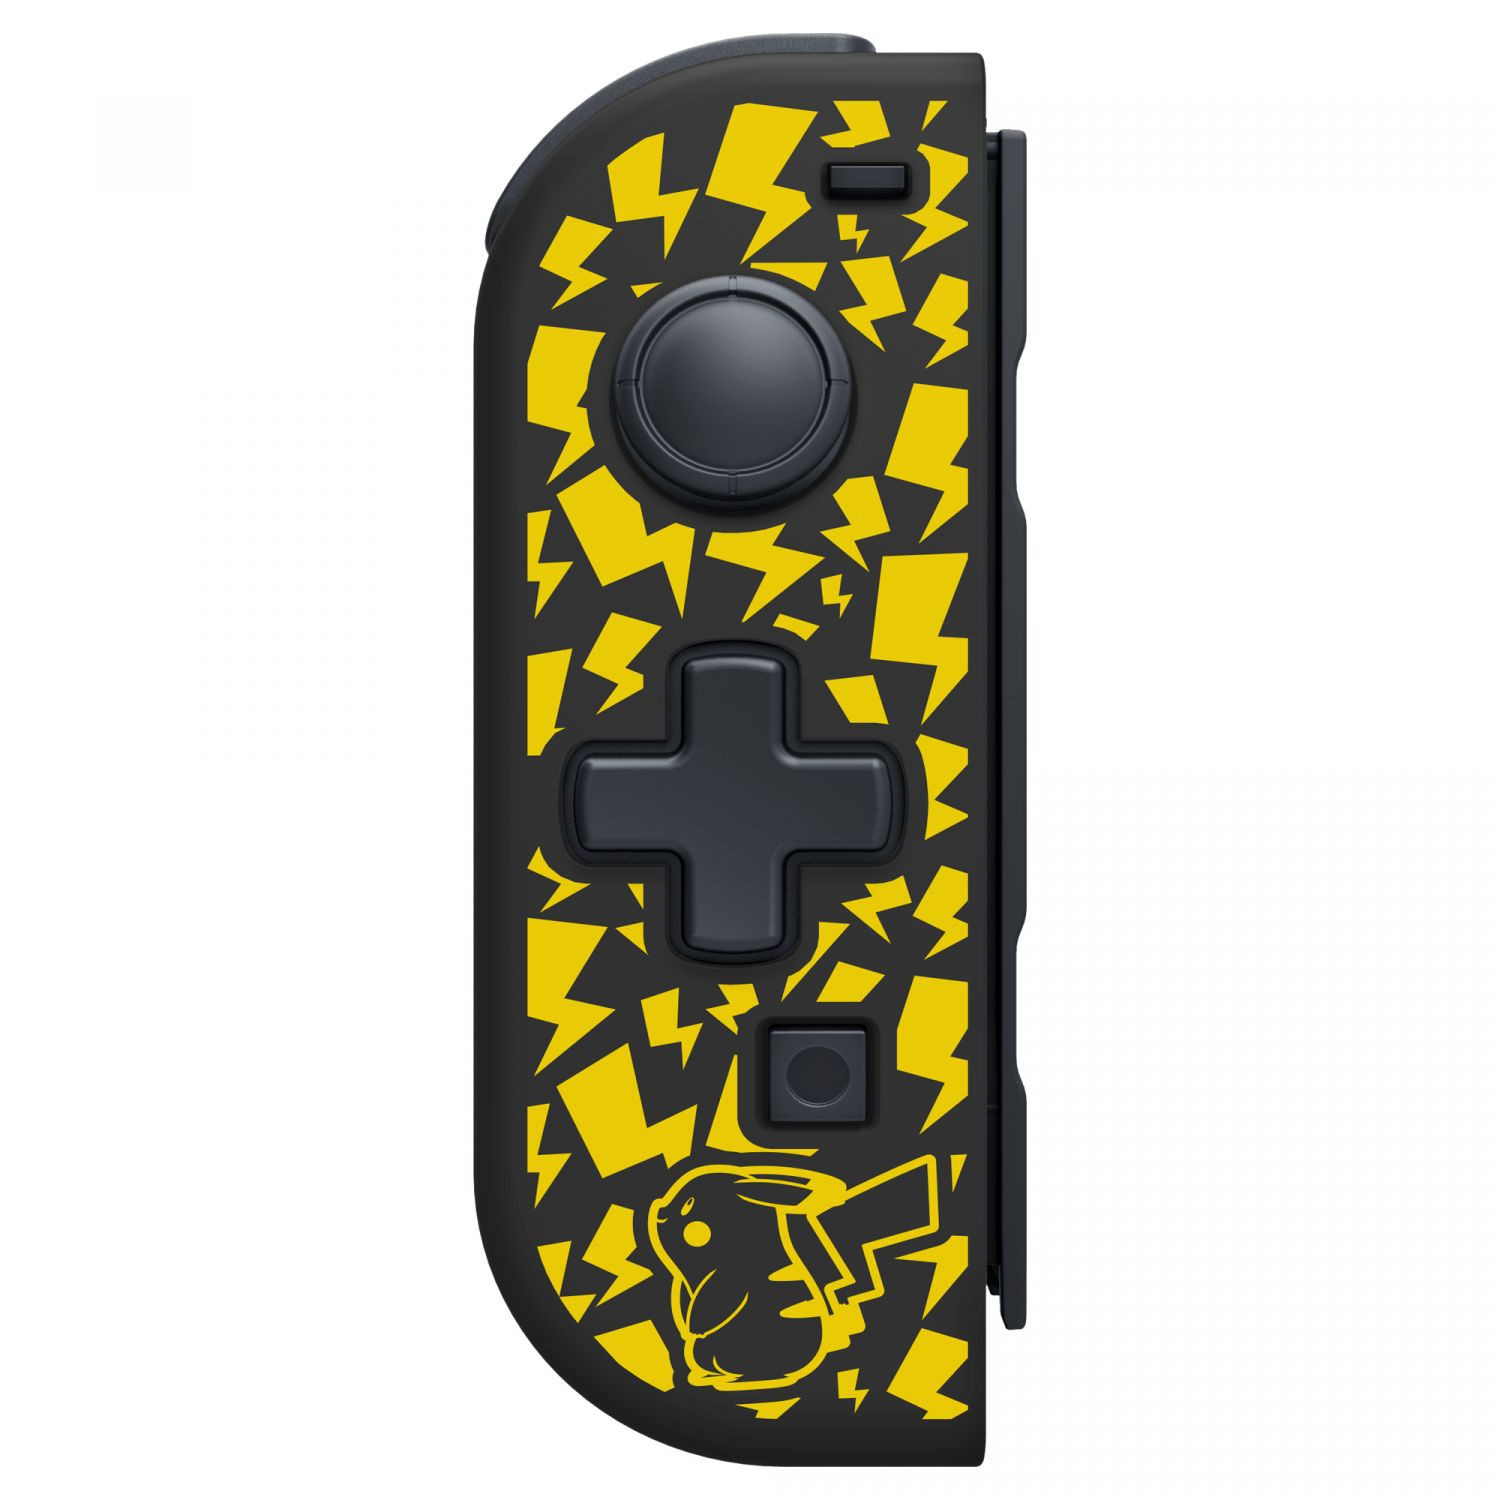 HORI D-pad Joy-Con Left Pikachu Version for Nintendo Switch